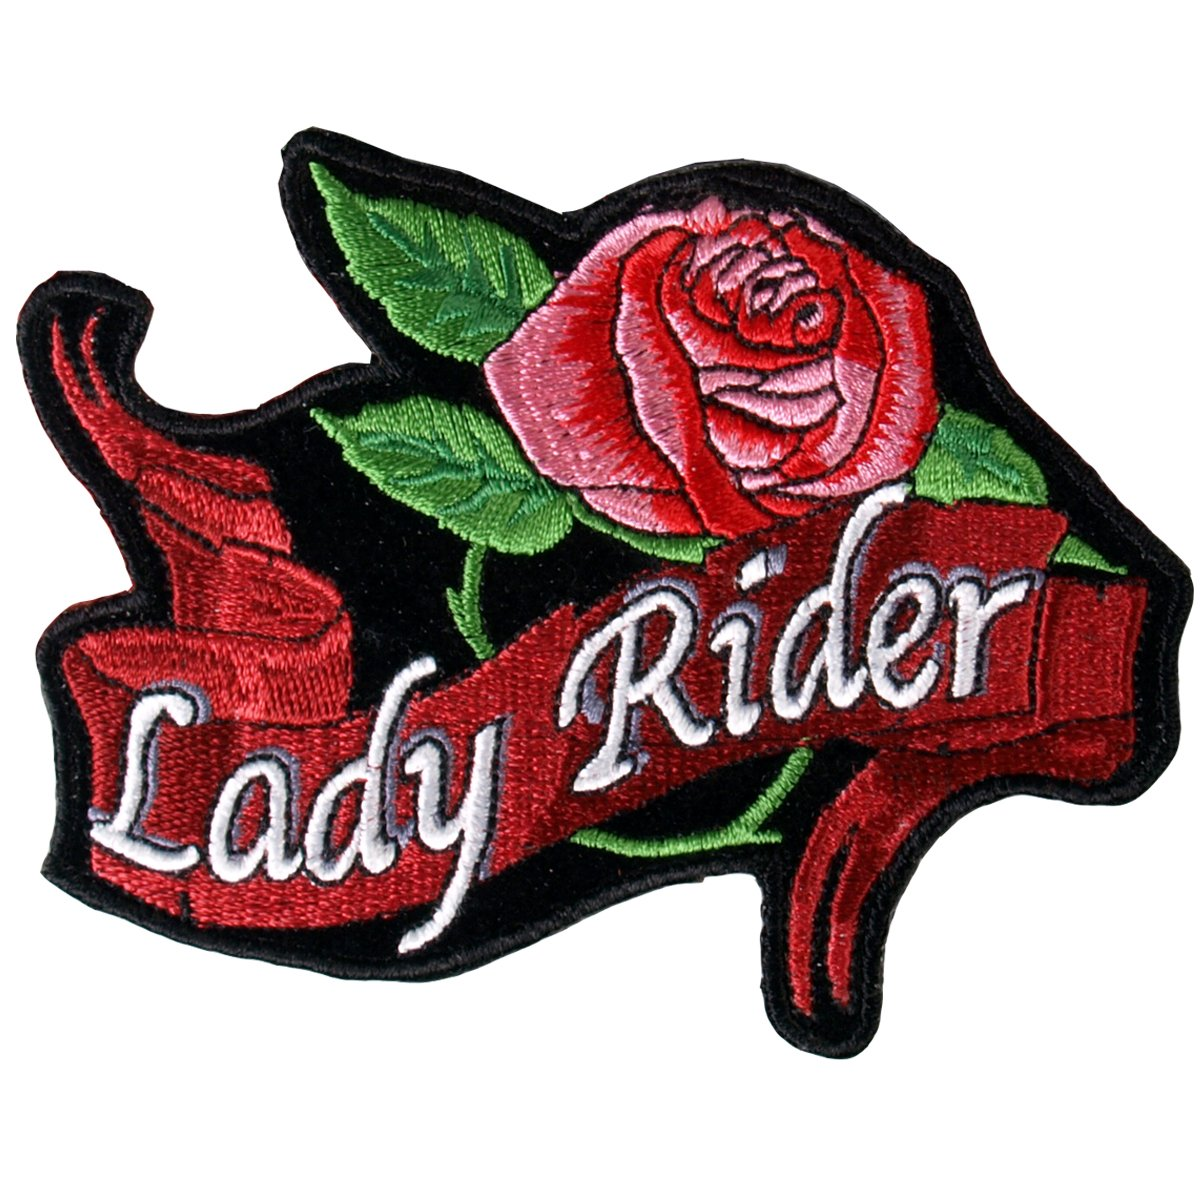 PPA1012 3 Width x 2 Height Hot Leathers Lady Rider Banner Patch